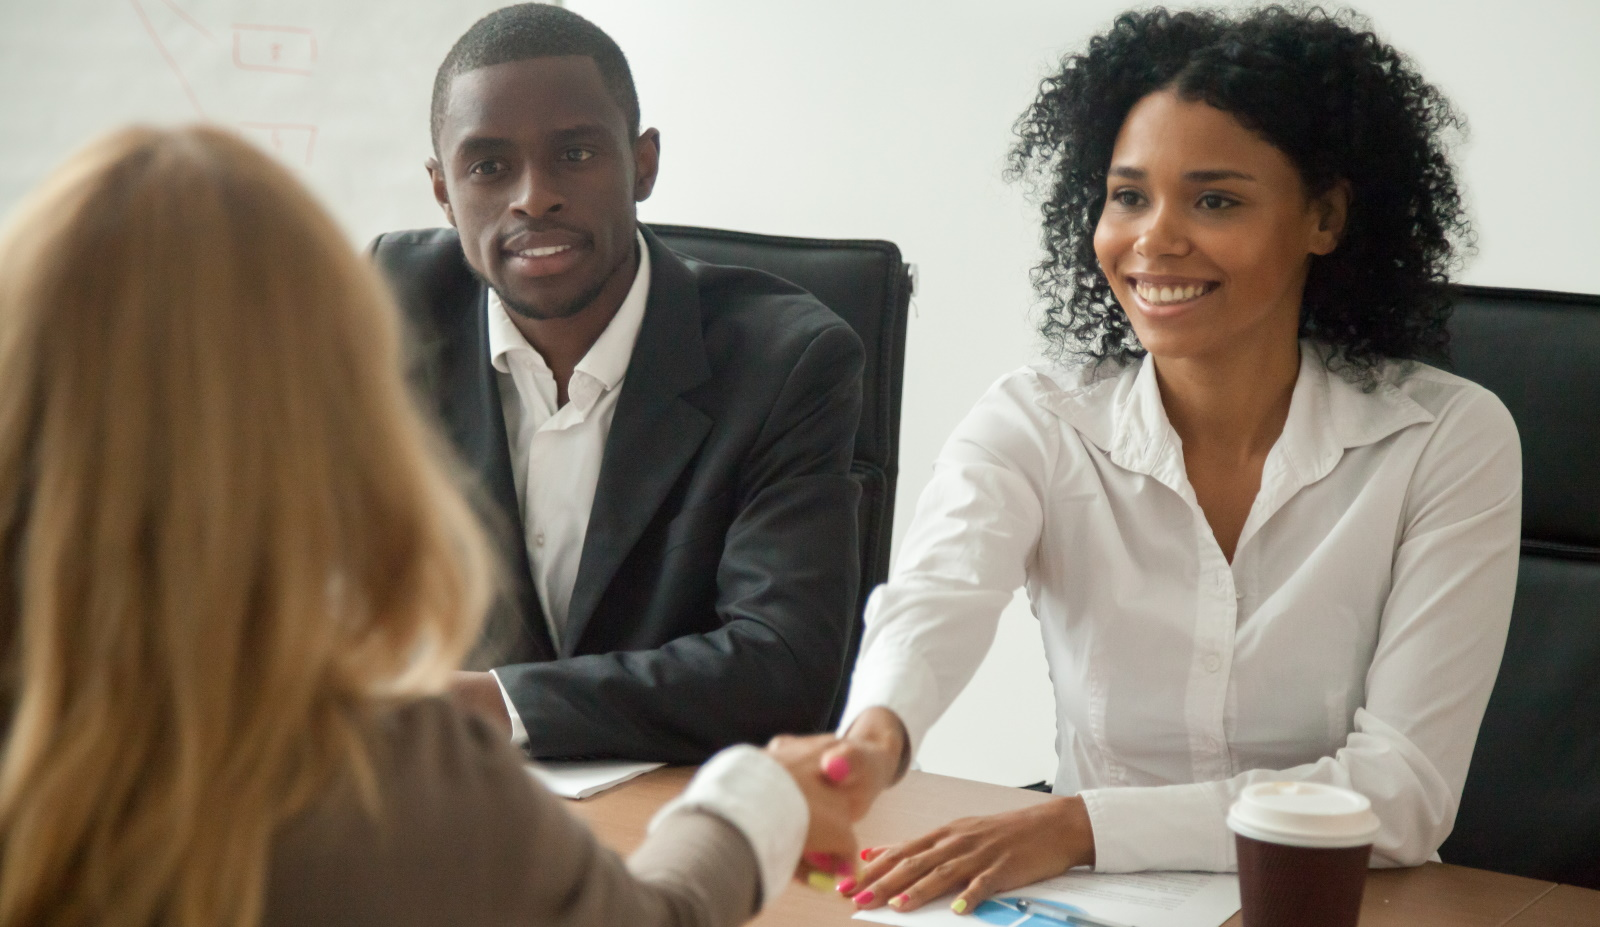 Employment Interviews: What Type is Right for Your Company